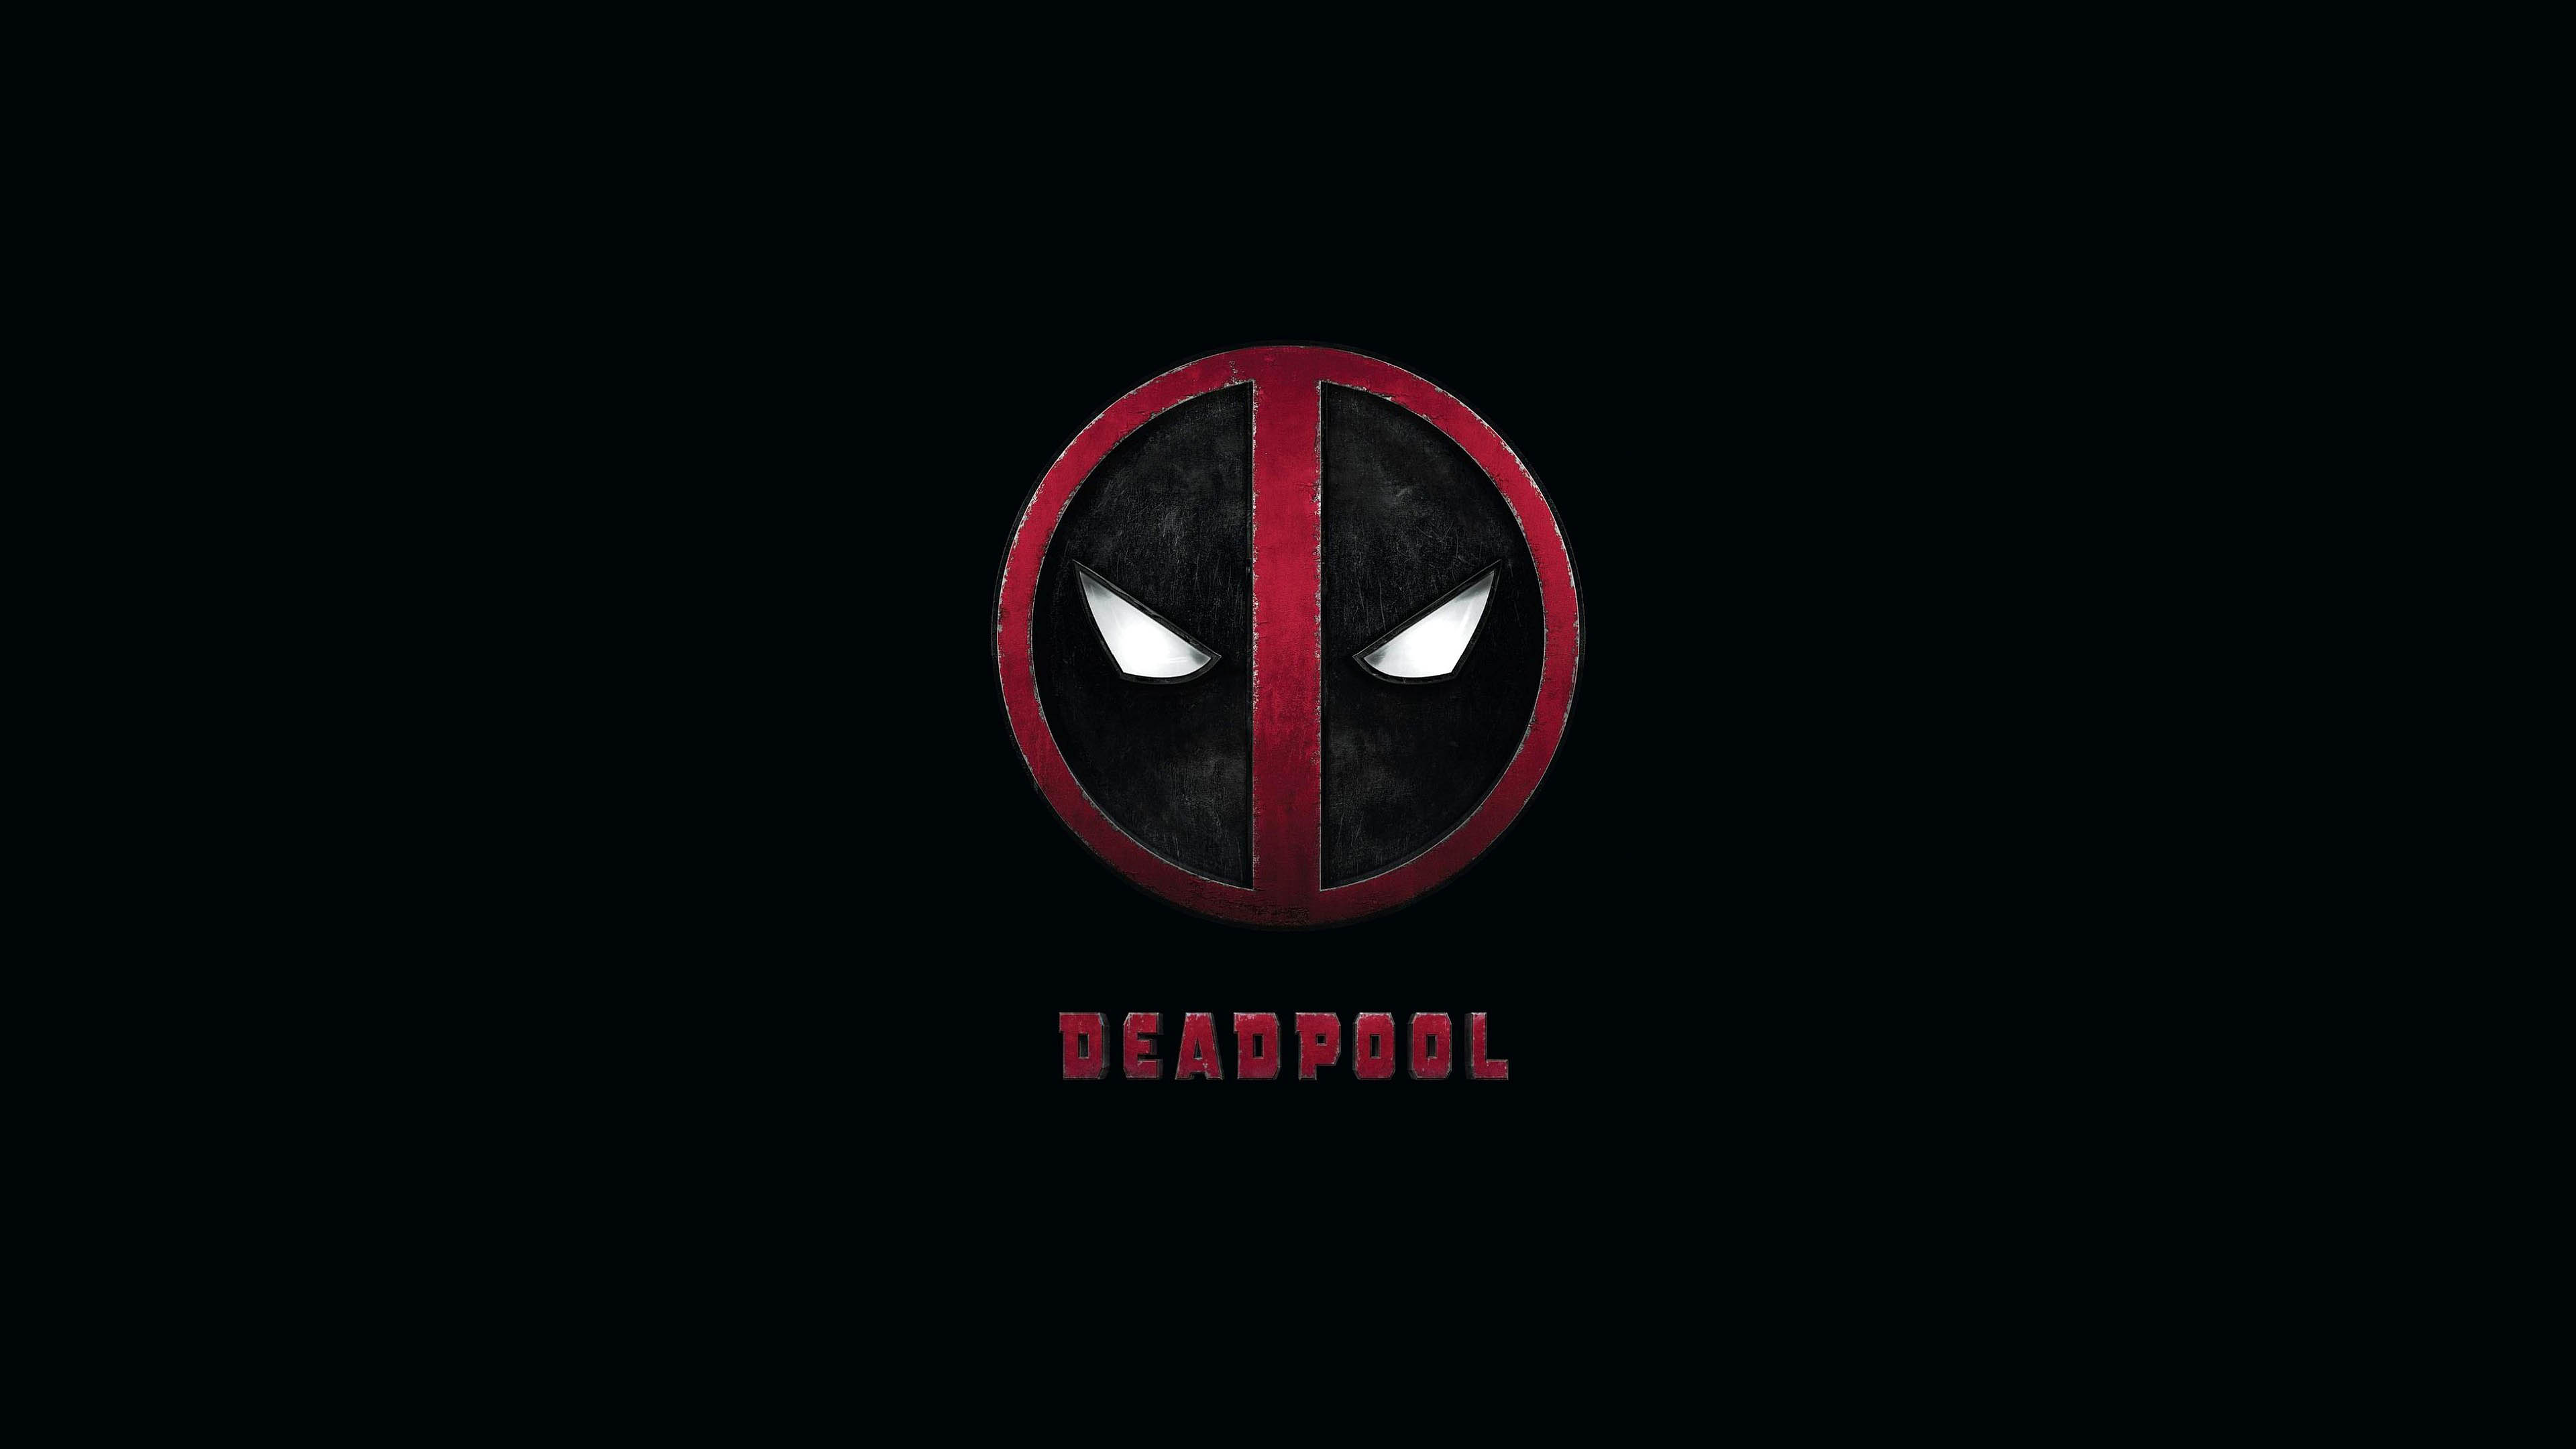 719 Deadpool HD Wallpapers